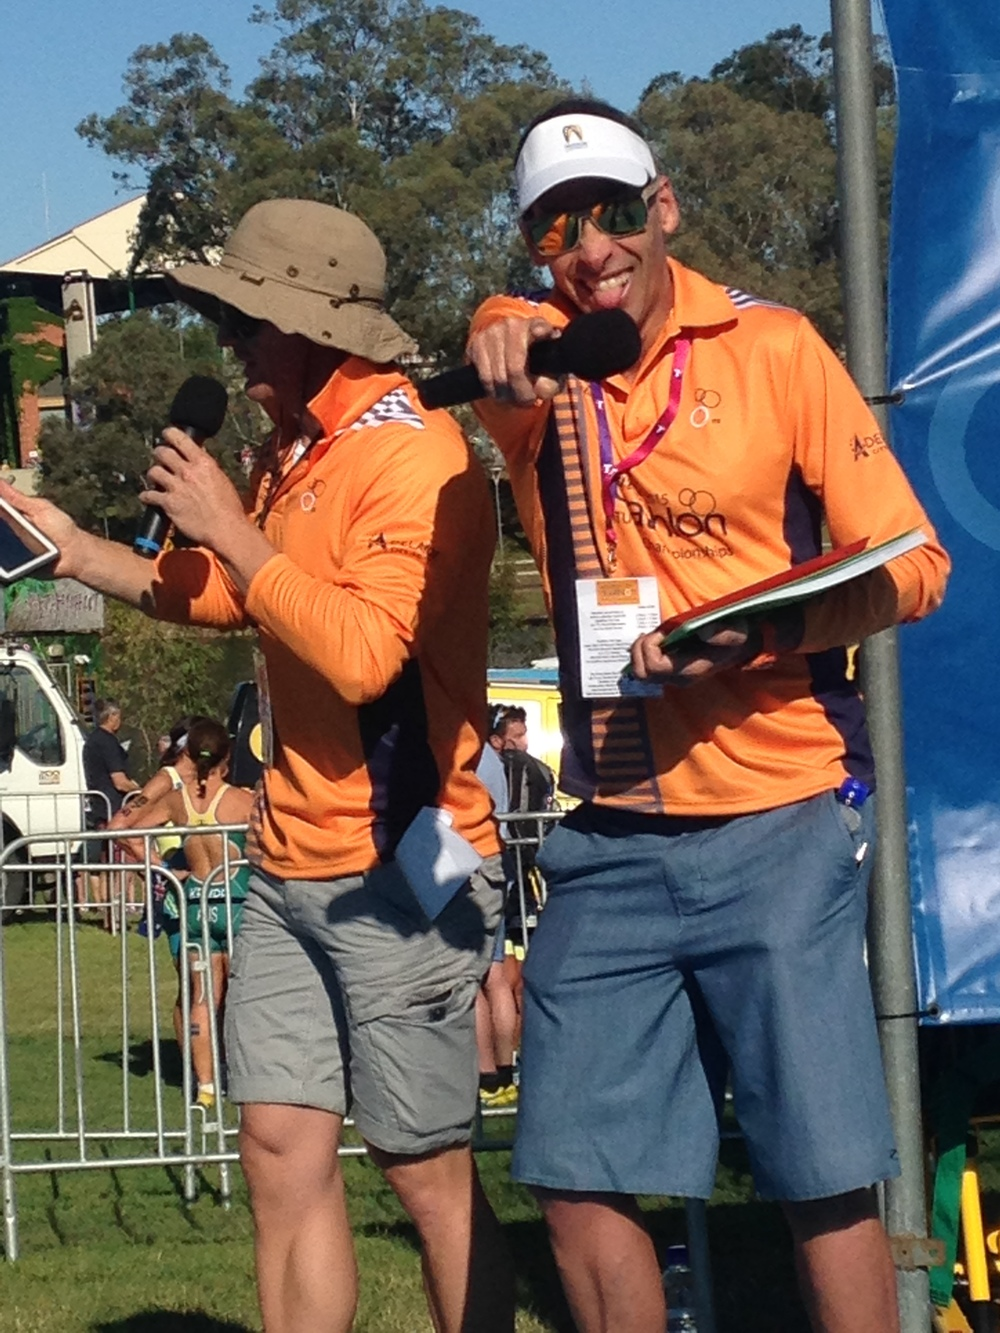 BTC member Matty Harris was straight off the plane from Hawaii World Champs to commentate!